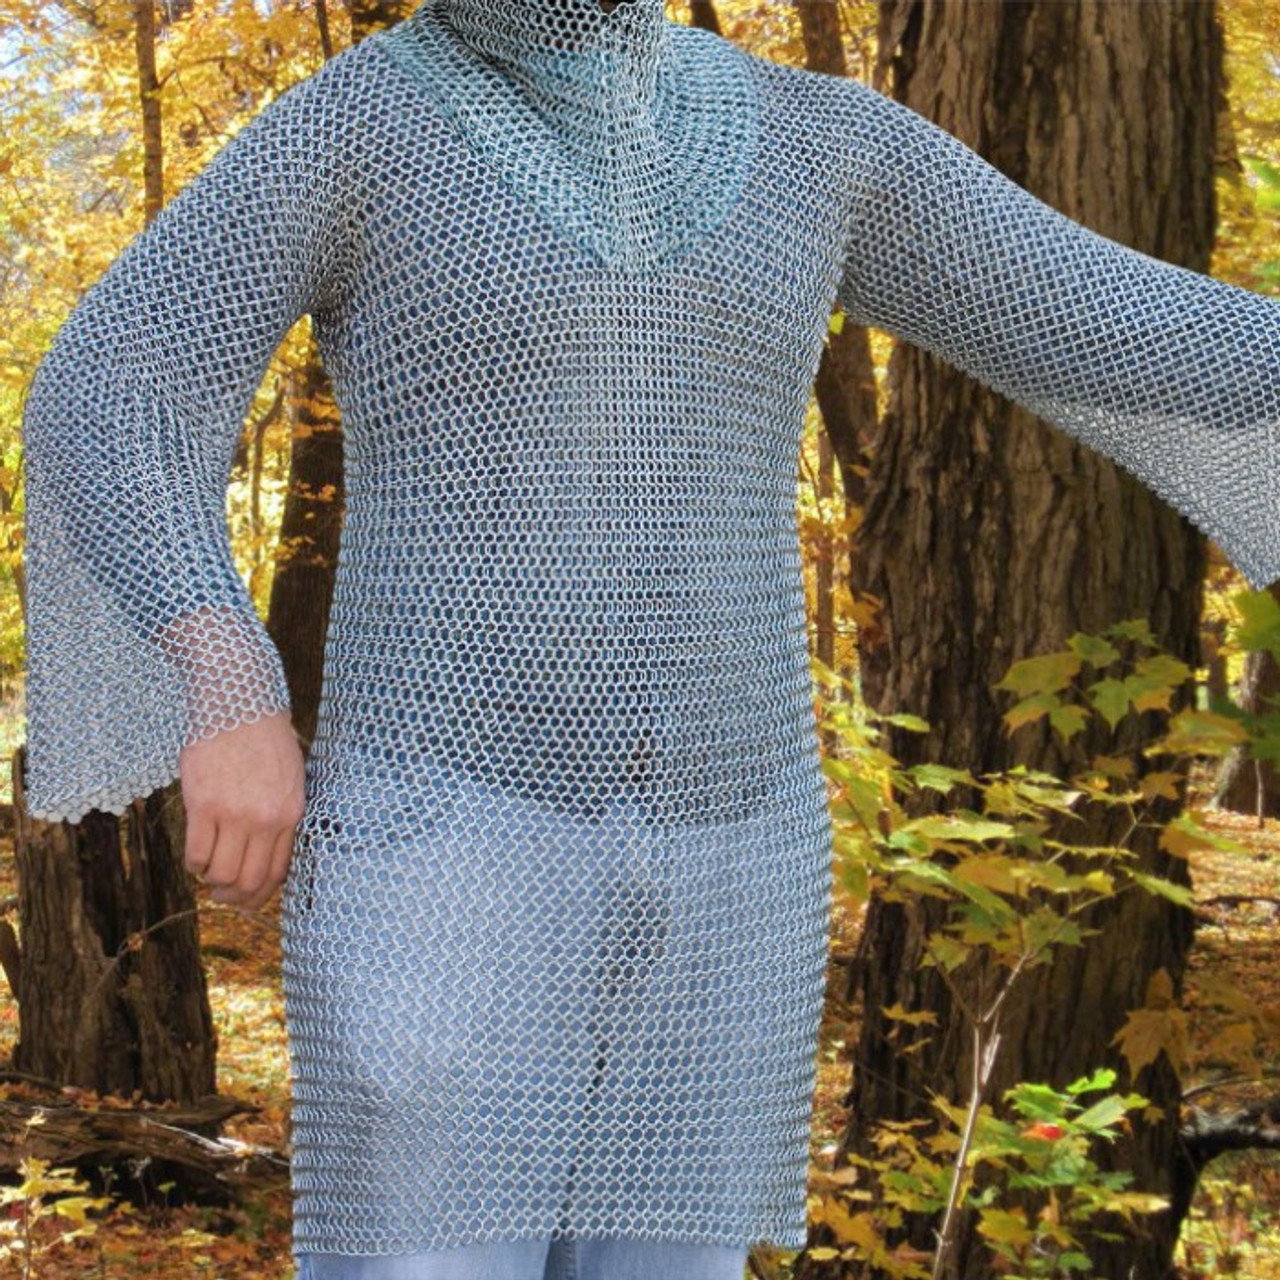 18 Gauge Chain Mail Shirt for Middle Ages Knight ONLY 1